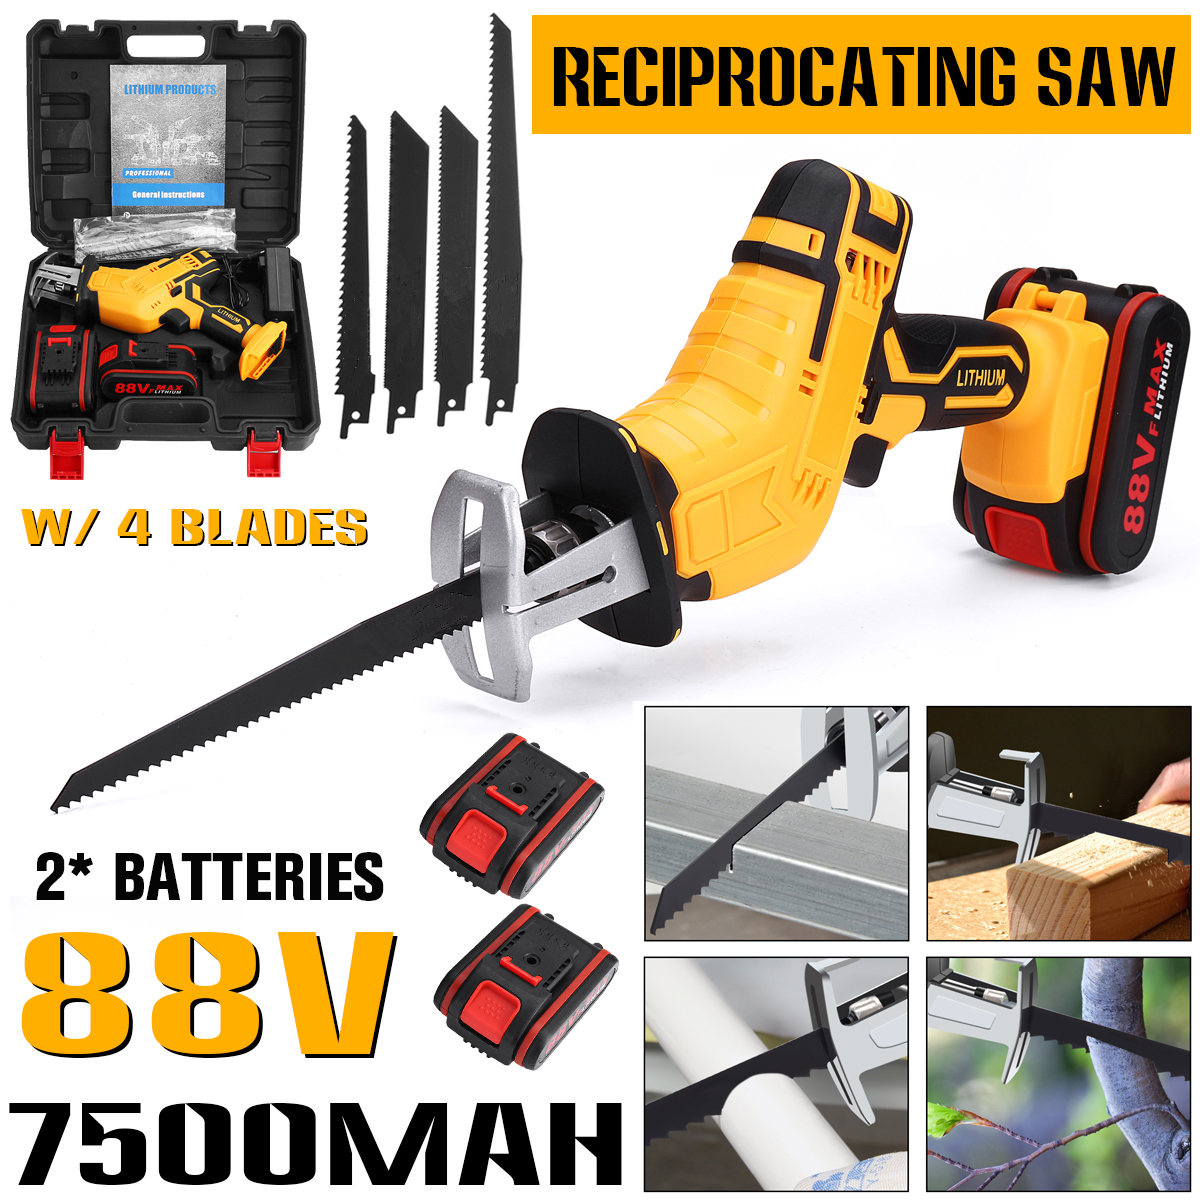 88V Rechargeable Cordless Reciprocating Saw 4 Blades Metal Cutting Woodworking Tool Kit with 1 2 Li-ion Battery Prunning Saw